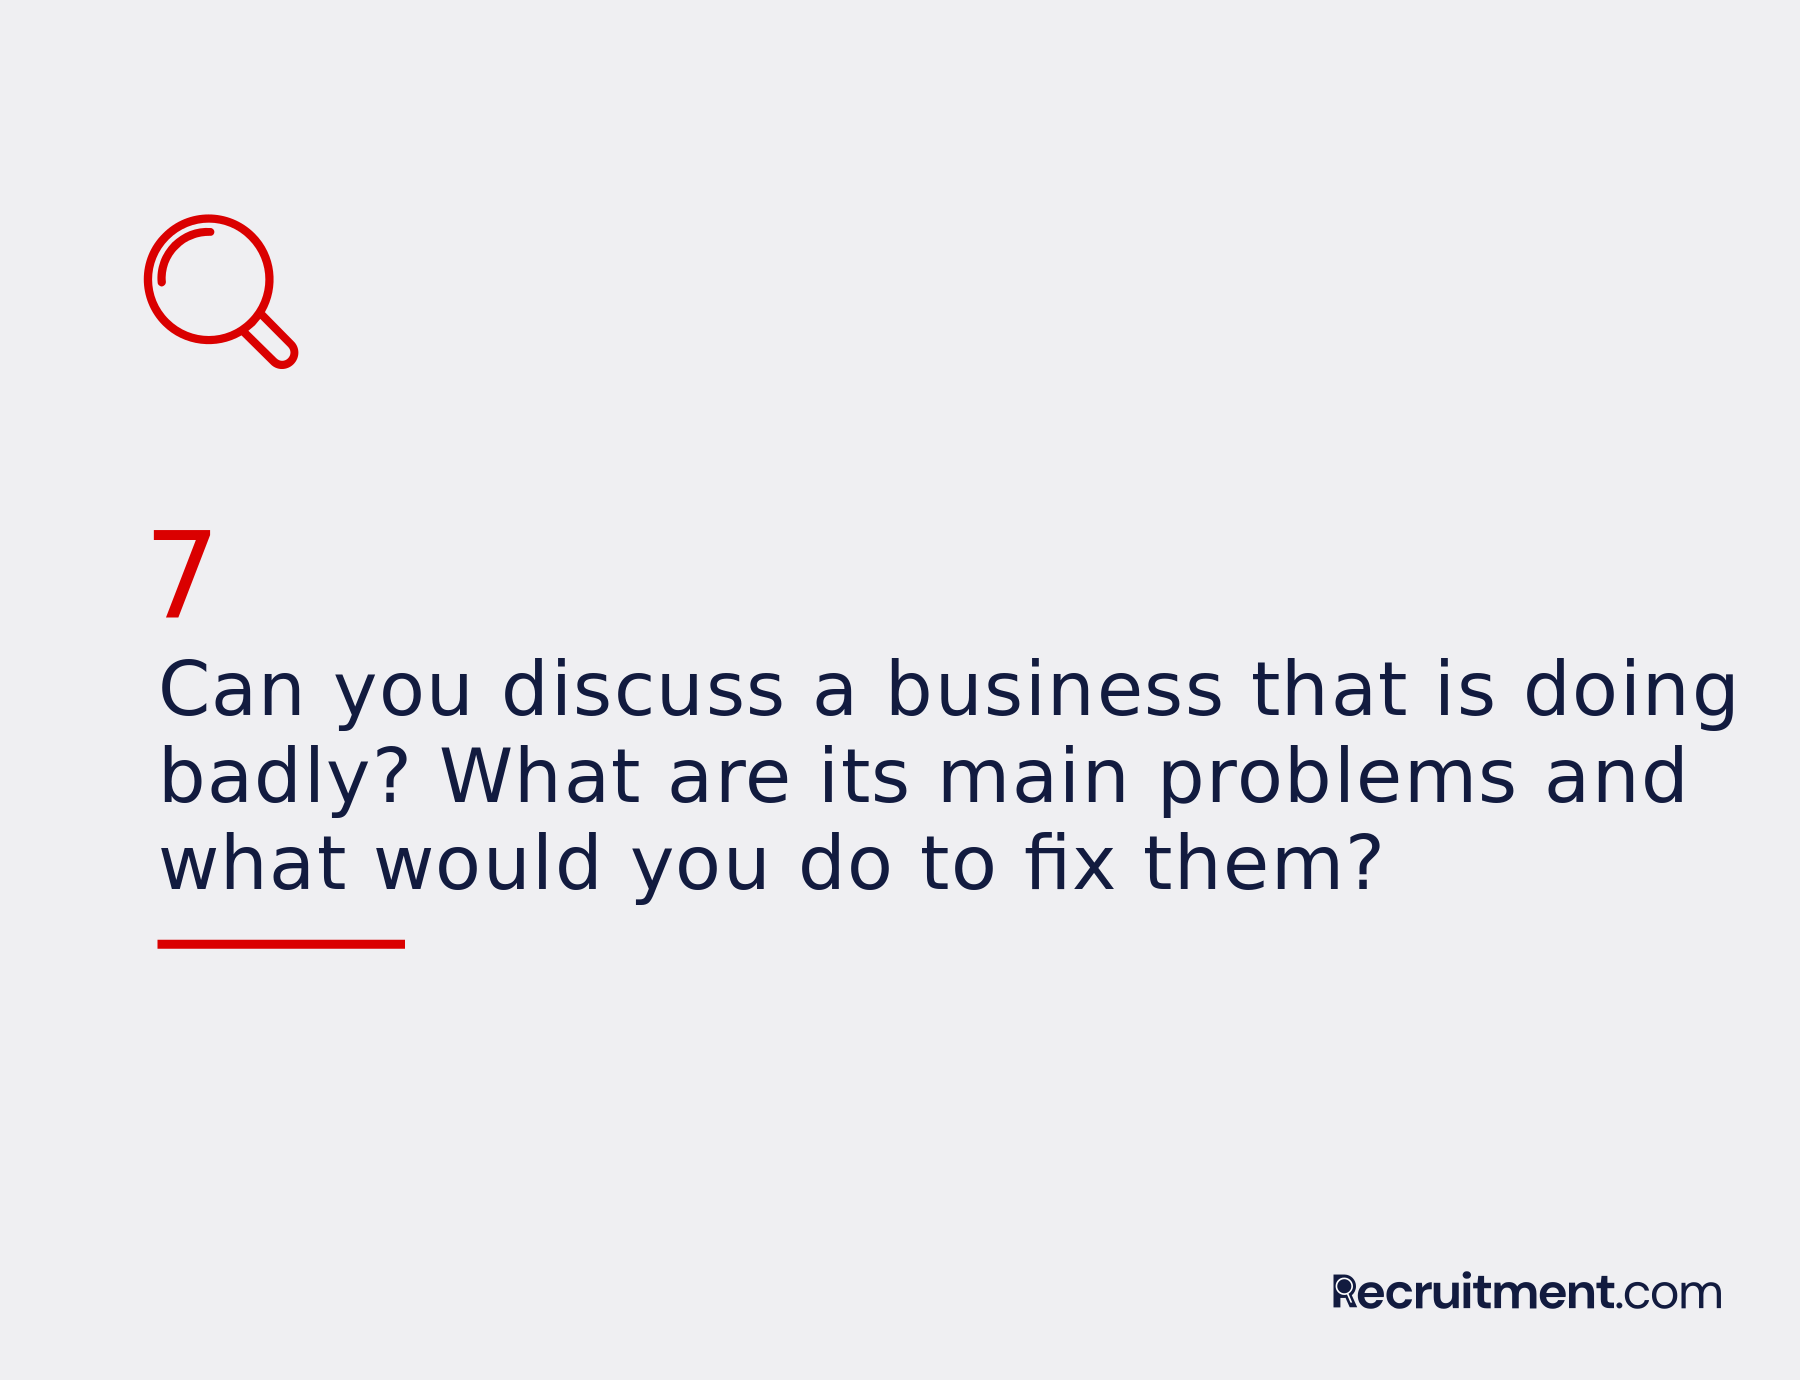 Common interview question 7: What organization or business is doing badly?